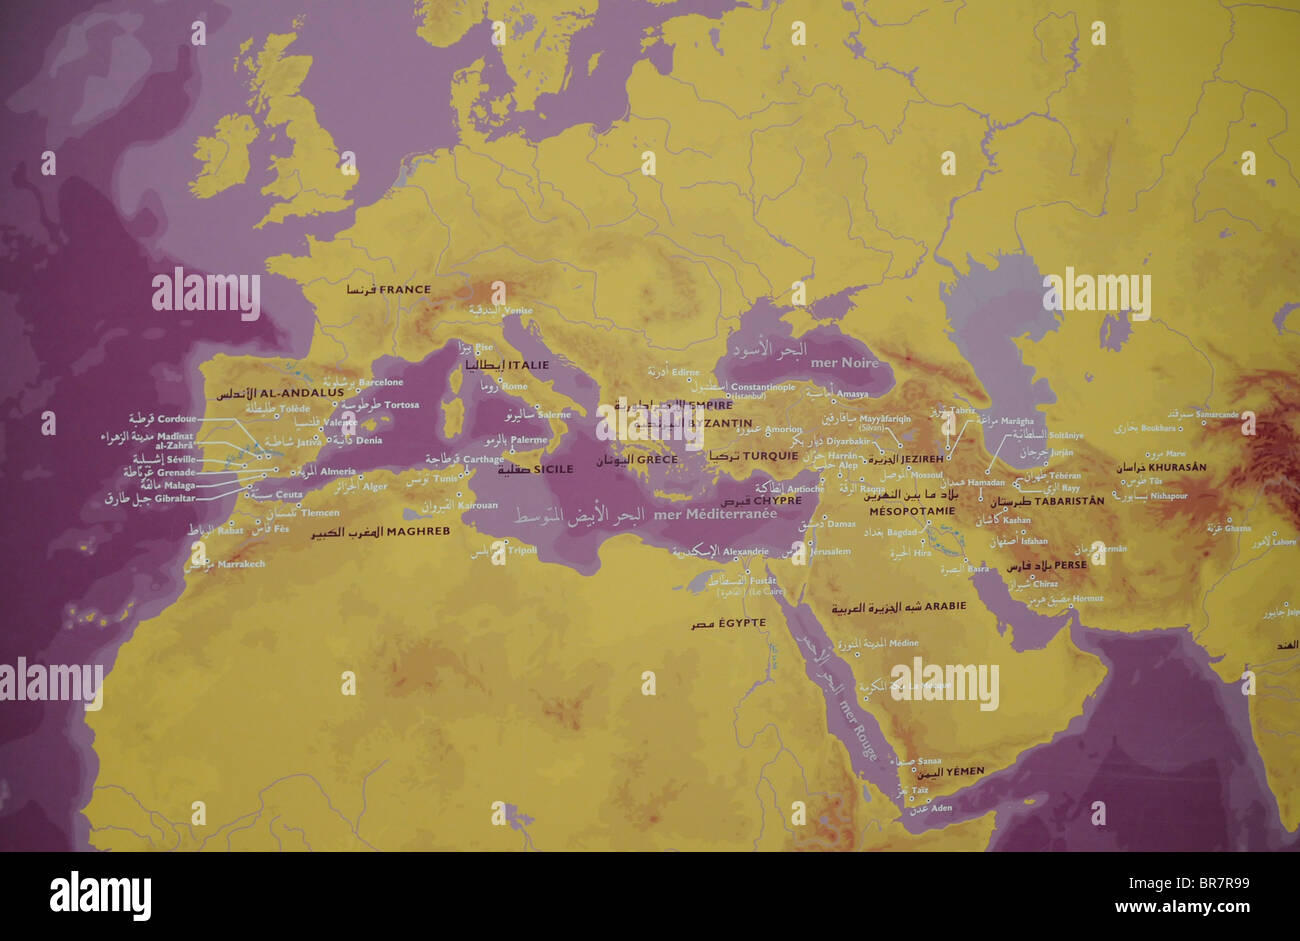 A Map Of The Mediterranean In French And Arabic On Display In The